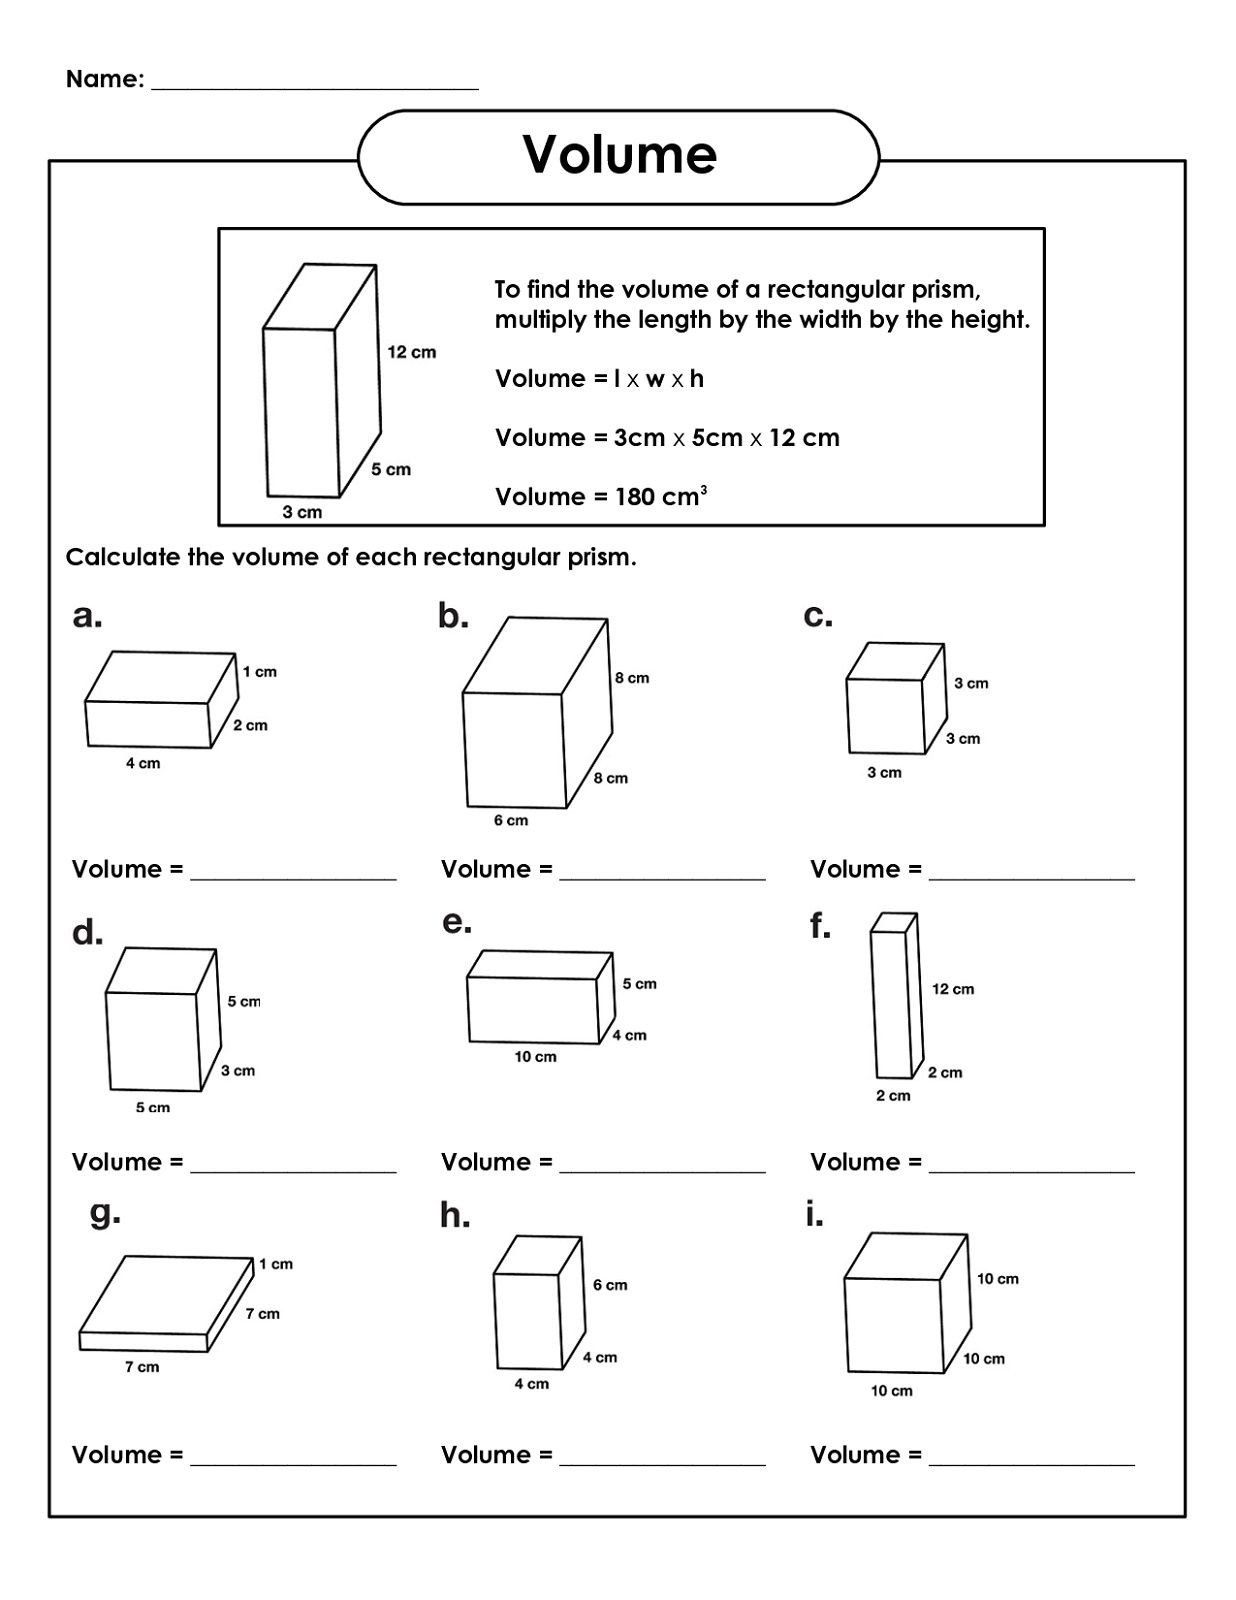 Volume Worksheets 3rd Grade Rectangular Prism Volume 5th Grade Math Worksheets